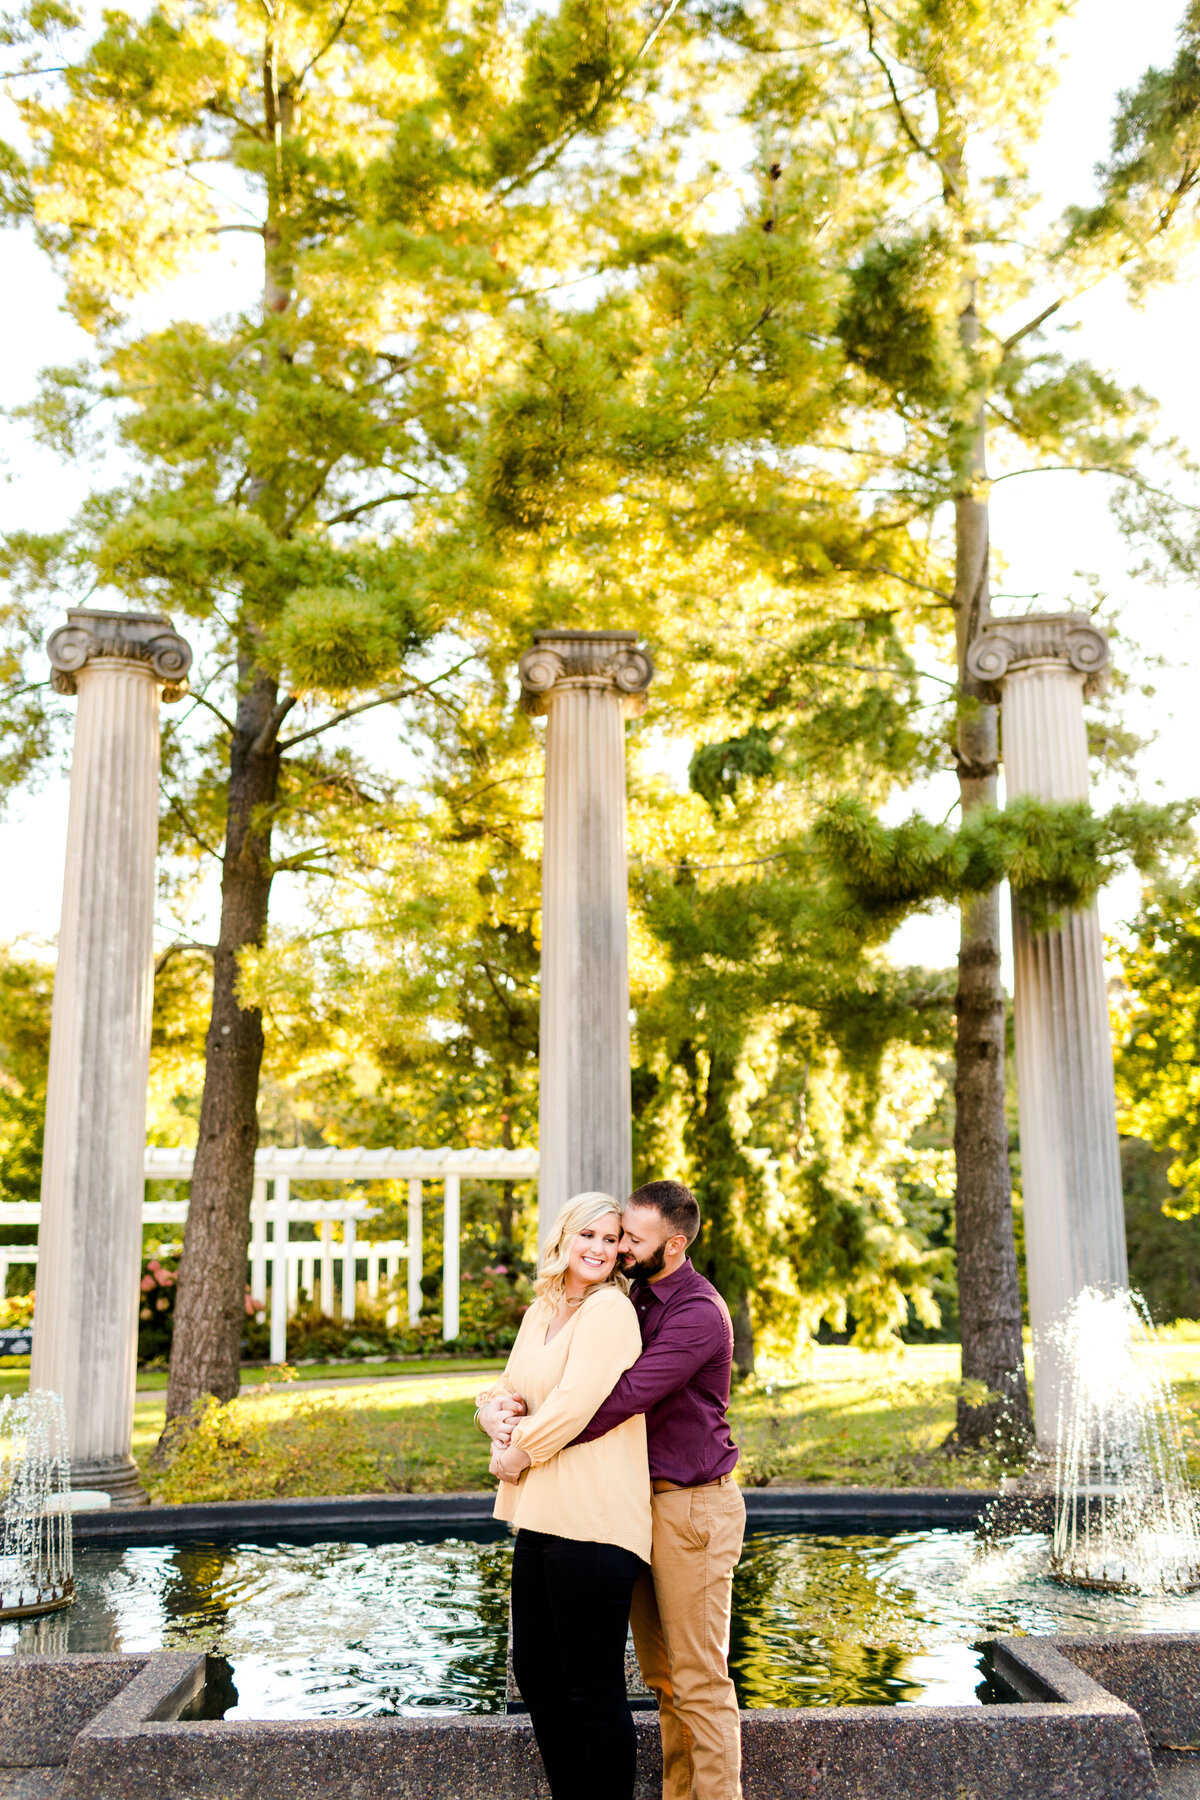 Caitlin and Luke Photography Wedding Engagement Luxury Illinois Destination Colorful Bright Joyful Cheerful Photographer 782